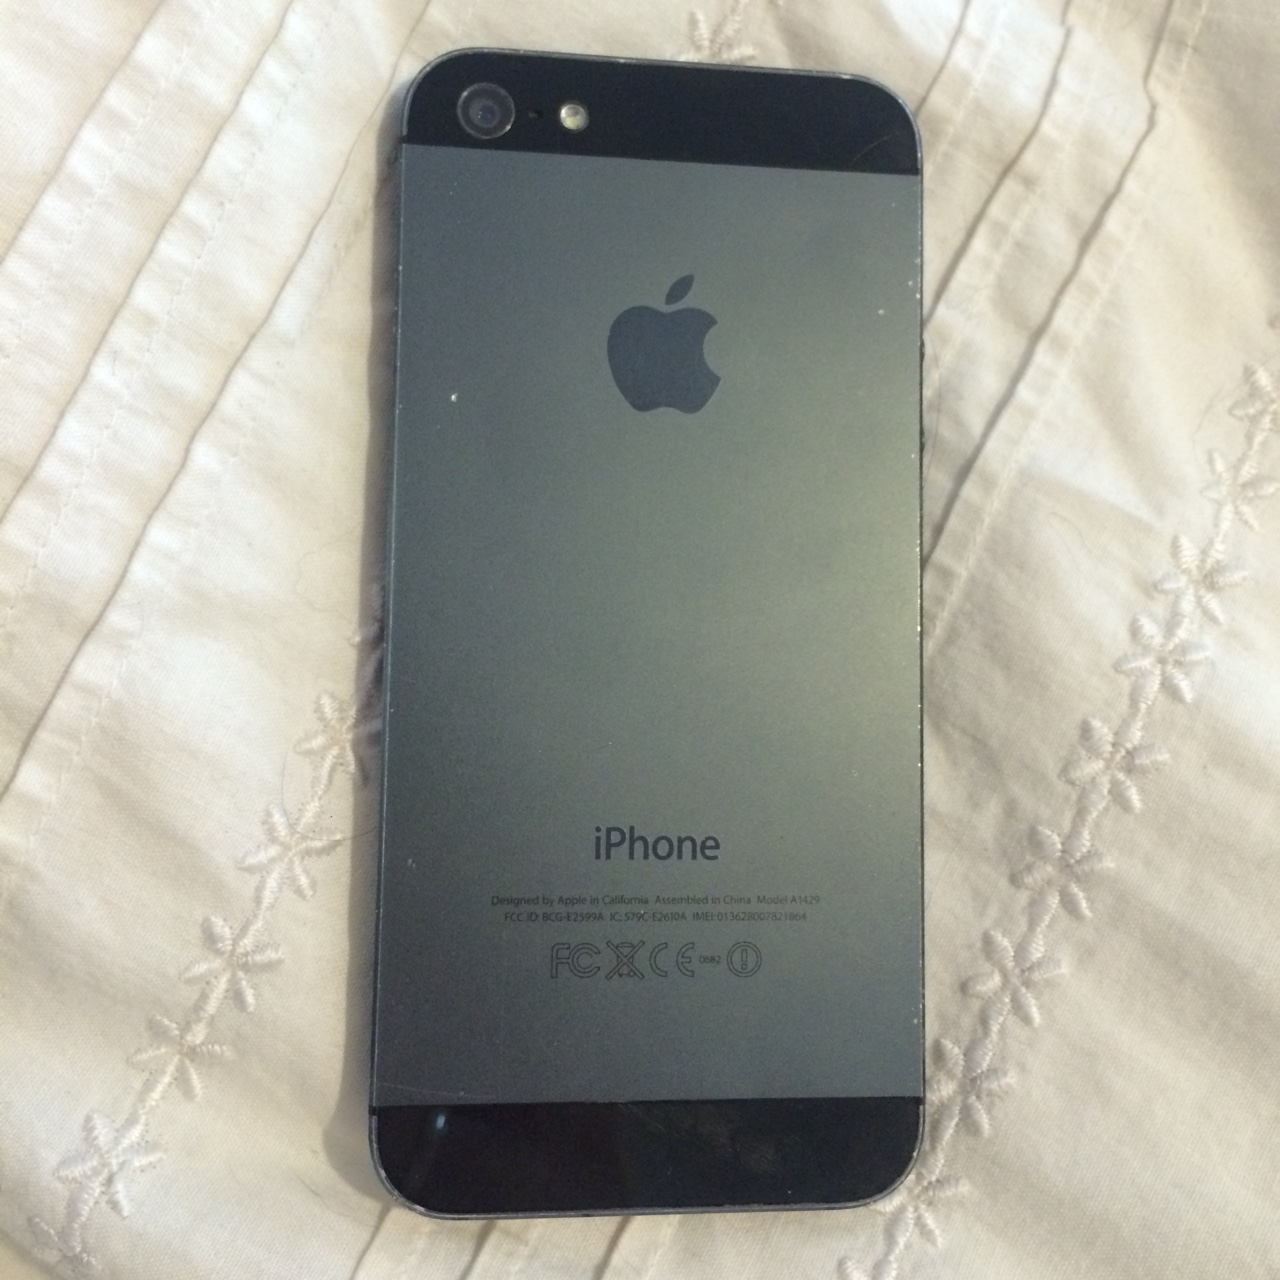 Iphone Model A1429 Price